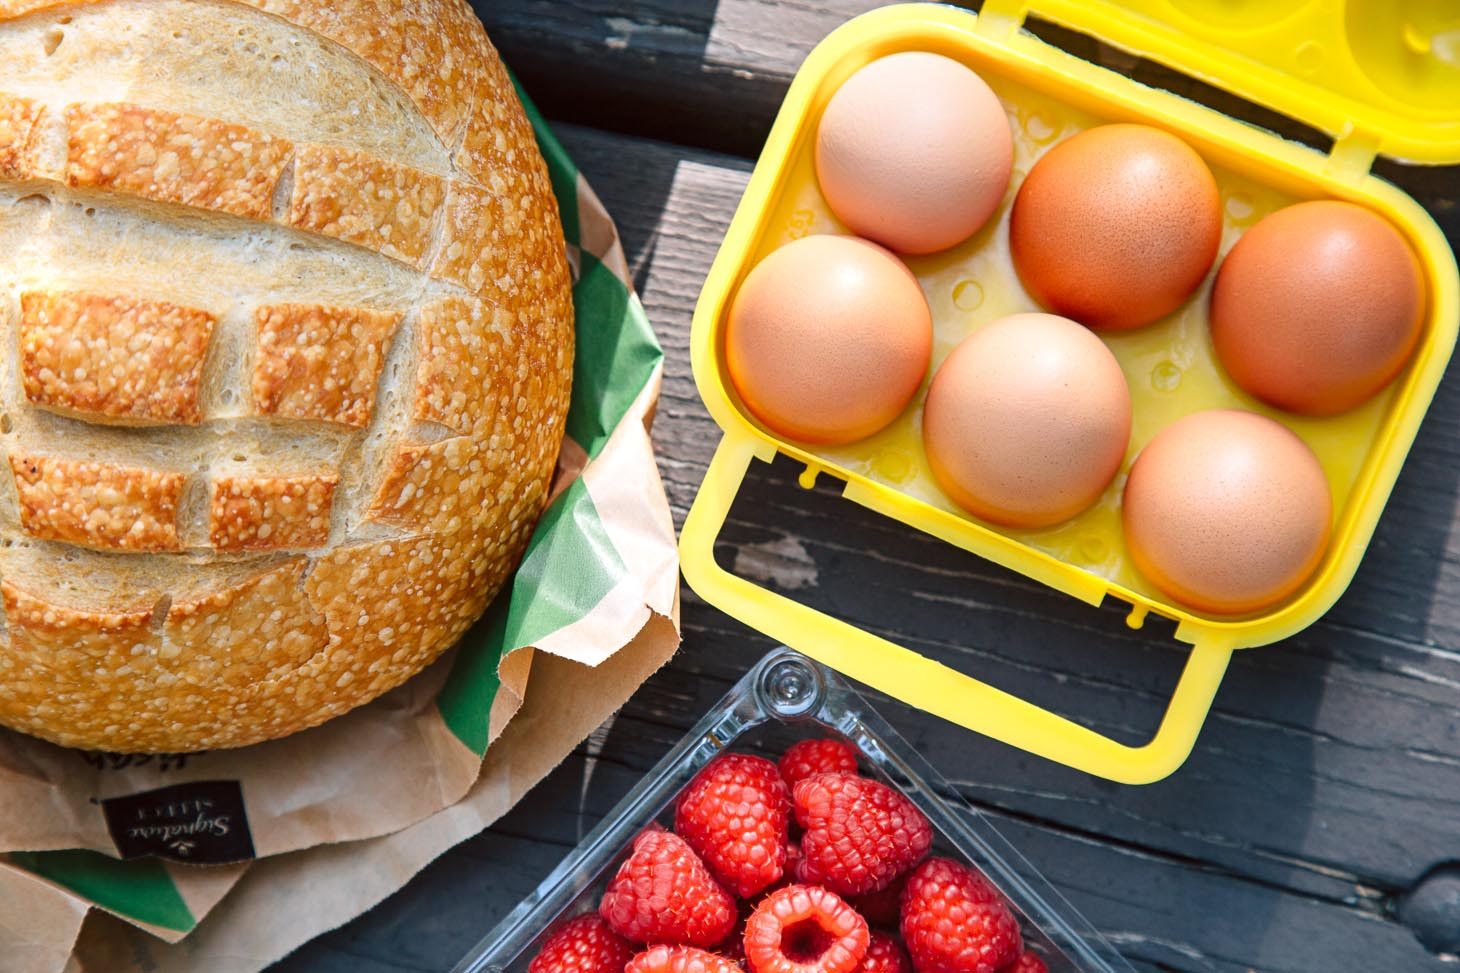 Ingredients for French toast including a loaf of bread and eggs in a yellow crate